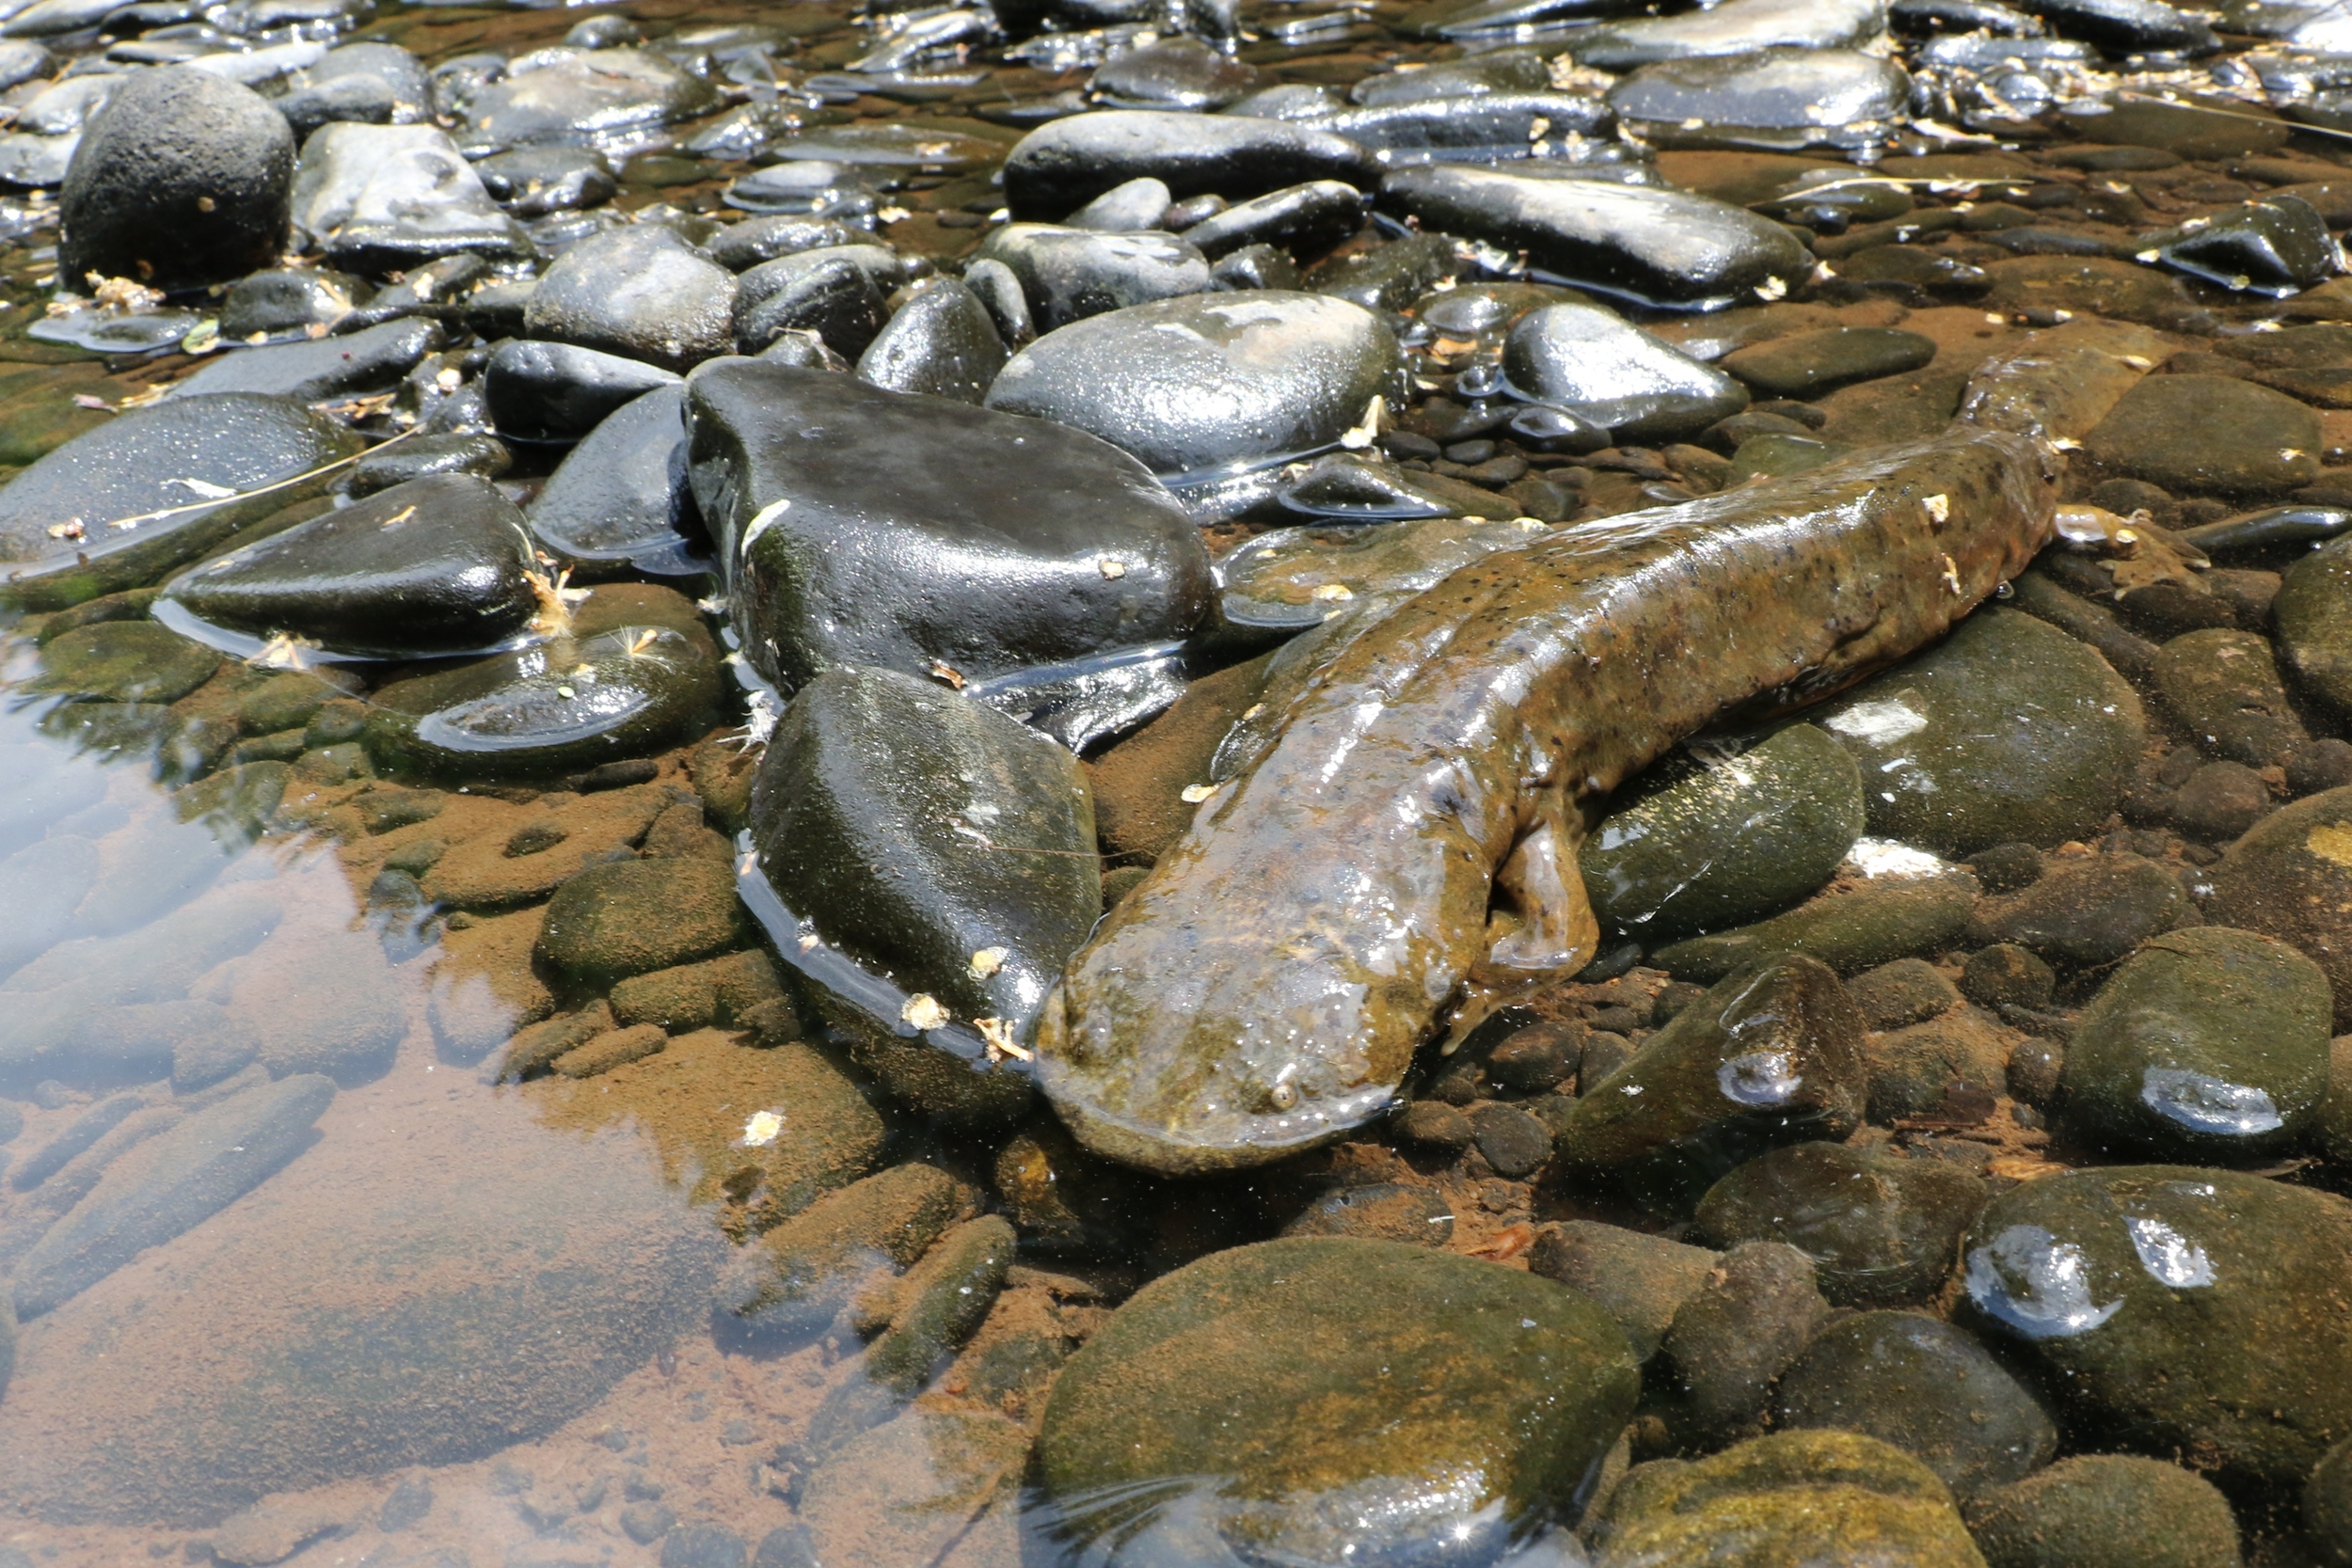 Eastern Hellbender - This is the largest salamander in North America. I was lucky enough to get all of my kids to see one this year, including my daughter who was both creeped out and intrigued by them. These guys are in trouble in the state. We'll see what the future holds.